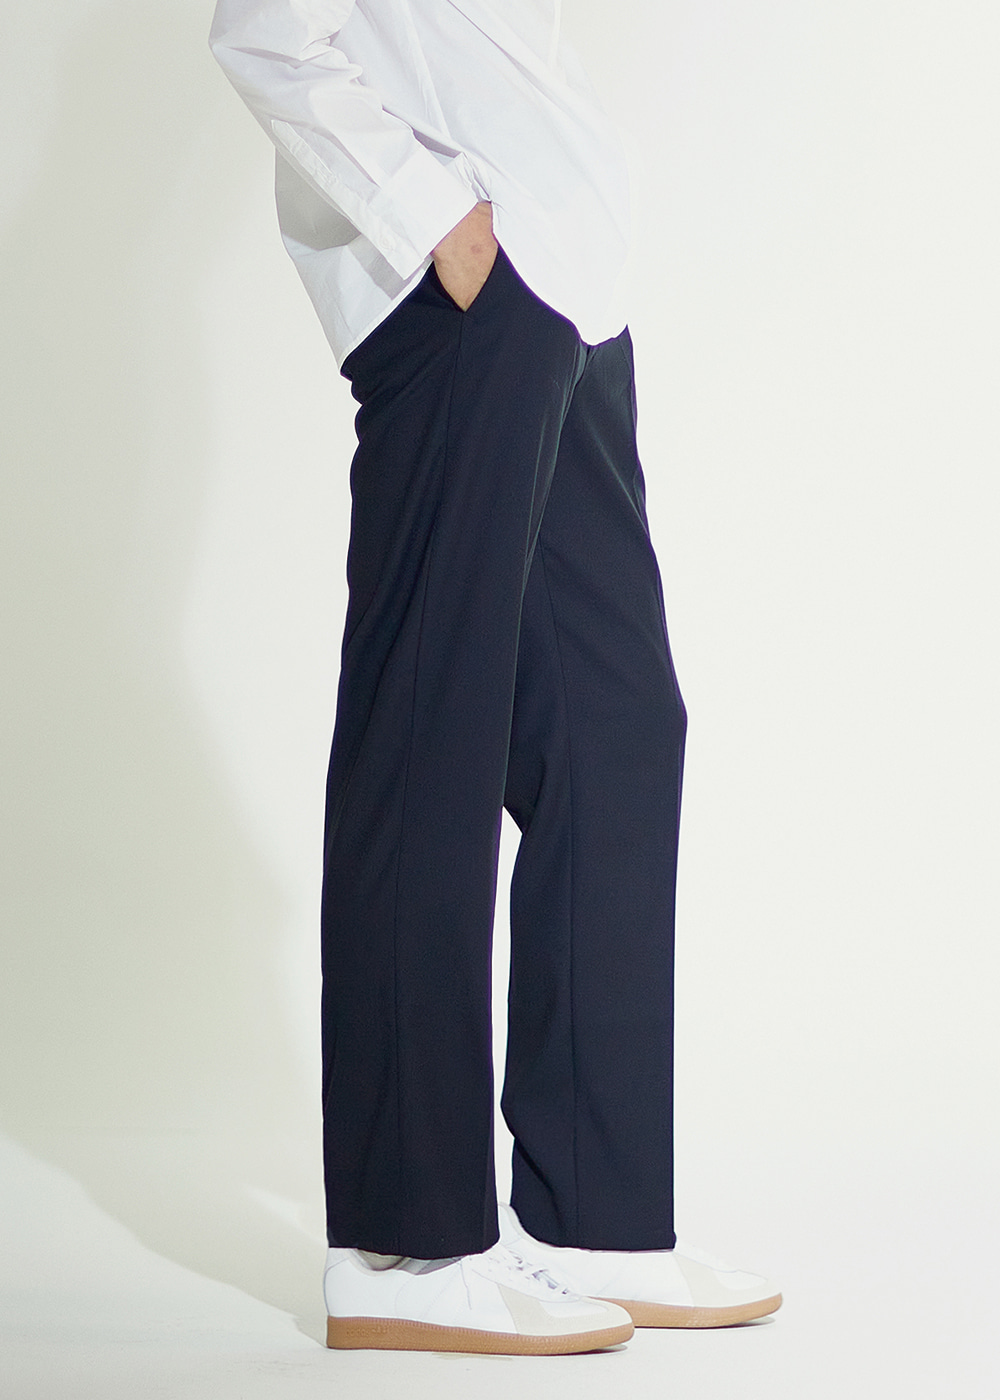 202 SEMI WIDE SLACKS BLACK